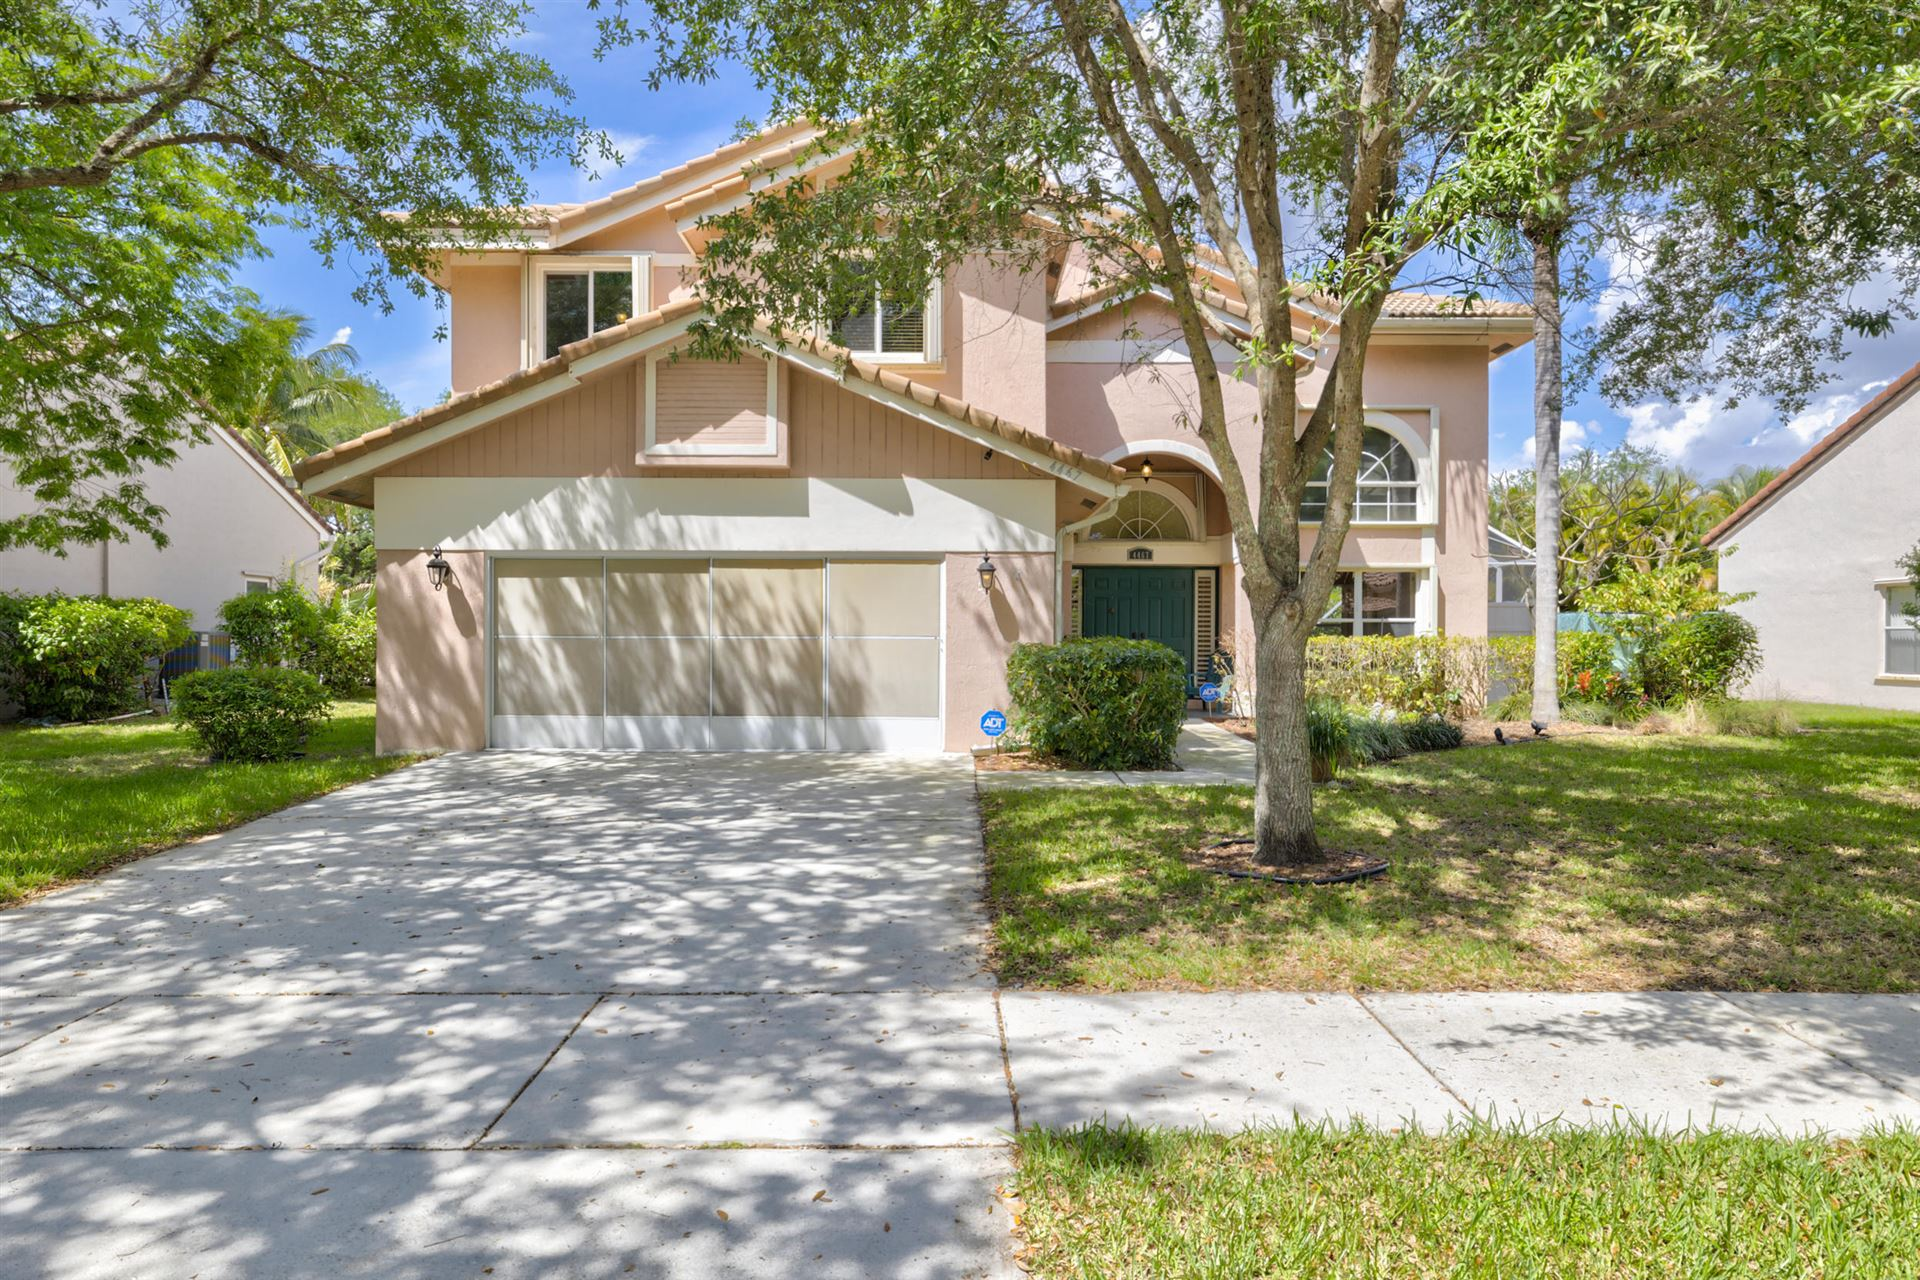 4467 NW 63rd Drive, Coconut Creek, FL 33073 - MLS#: RX-10703473